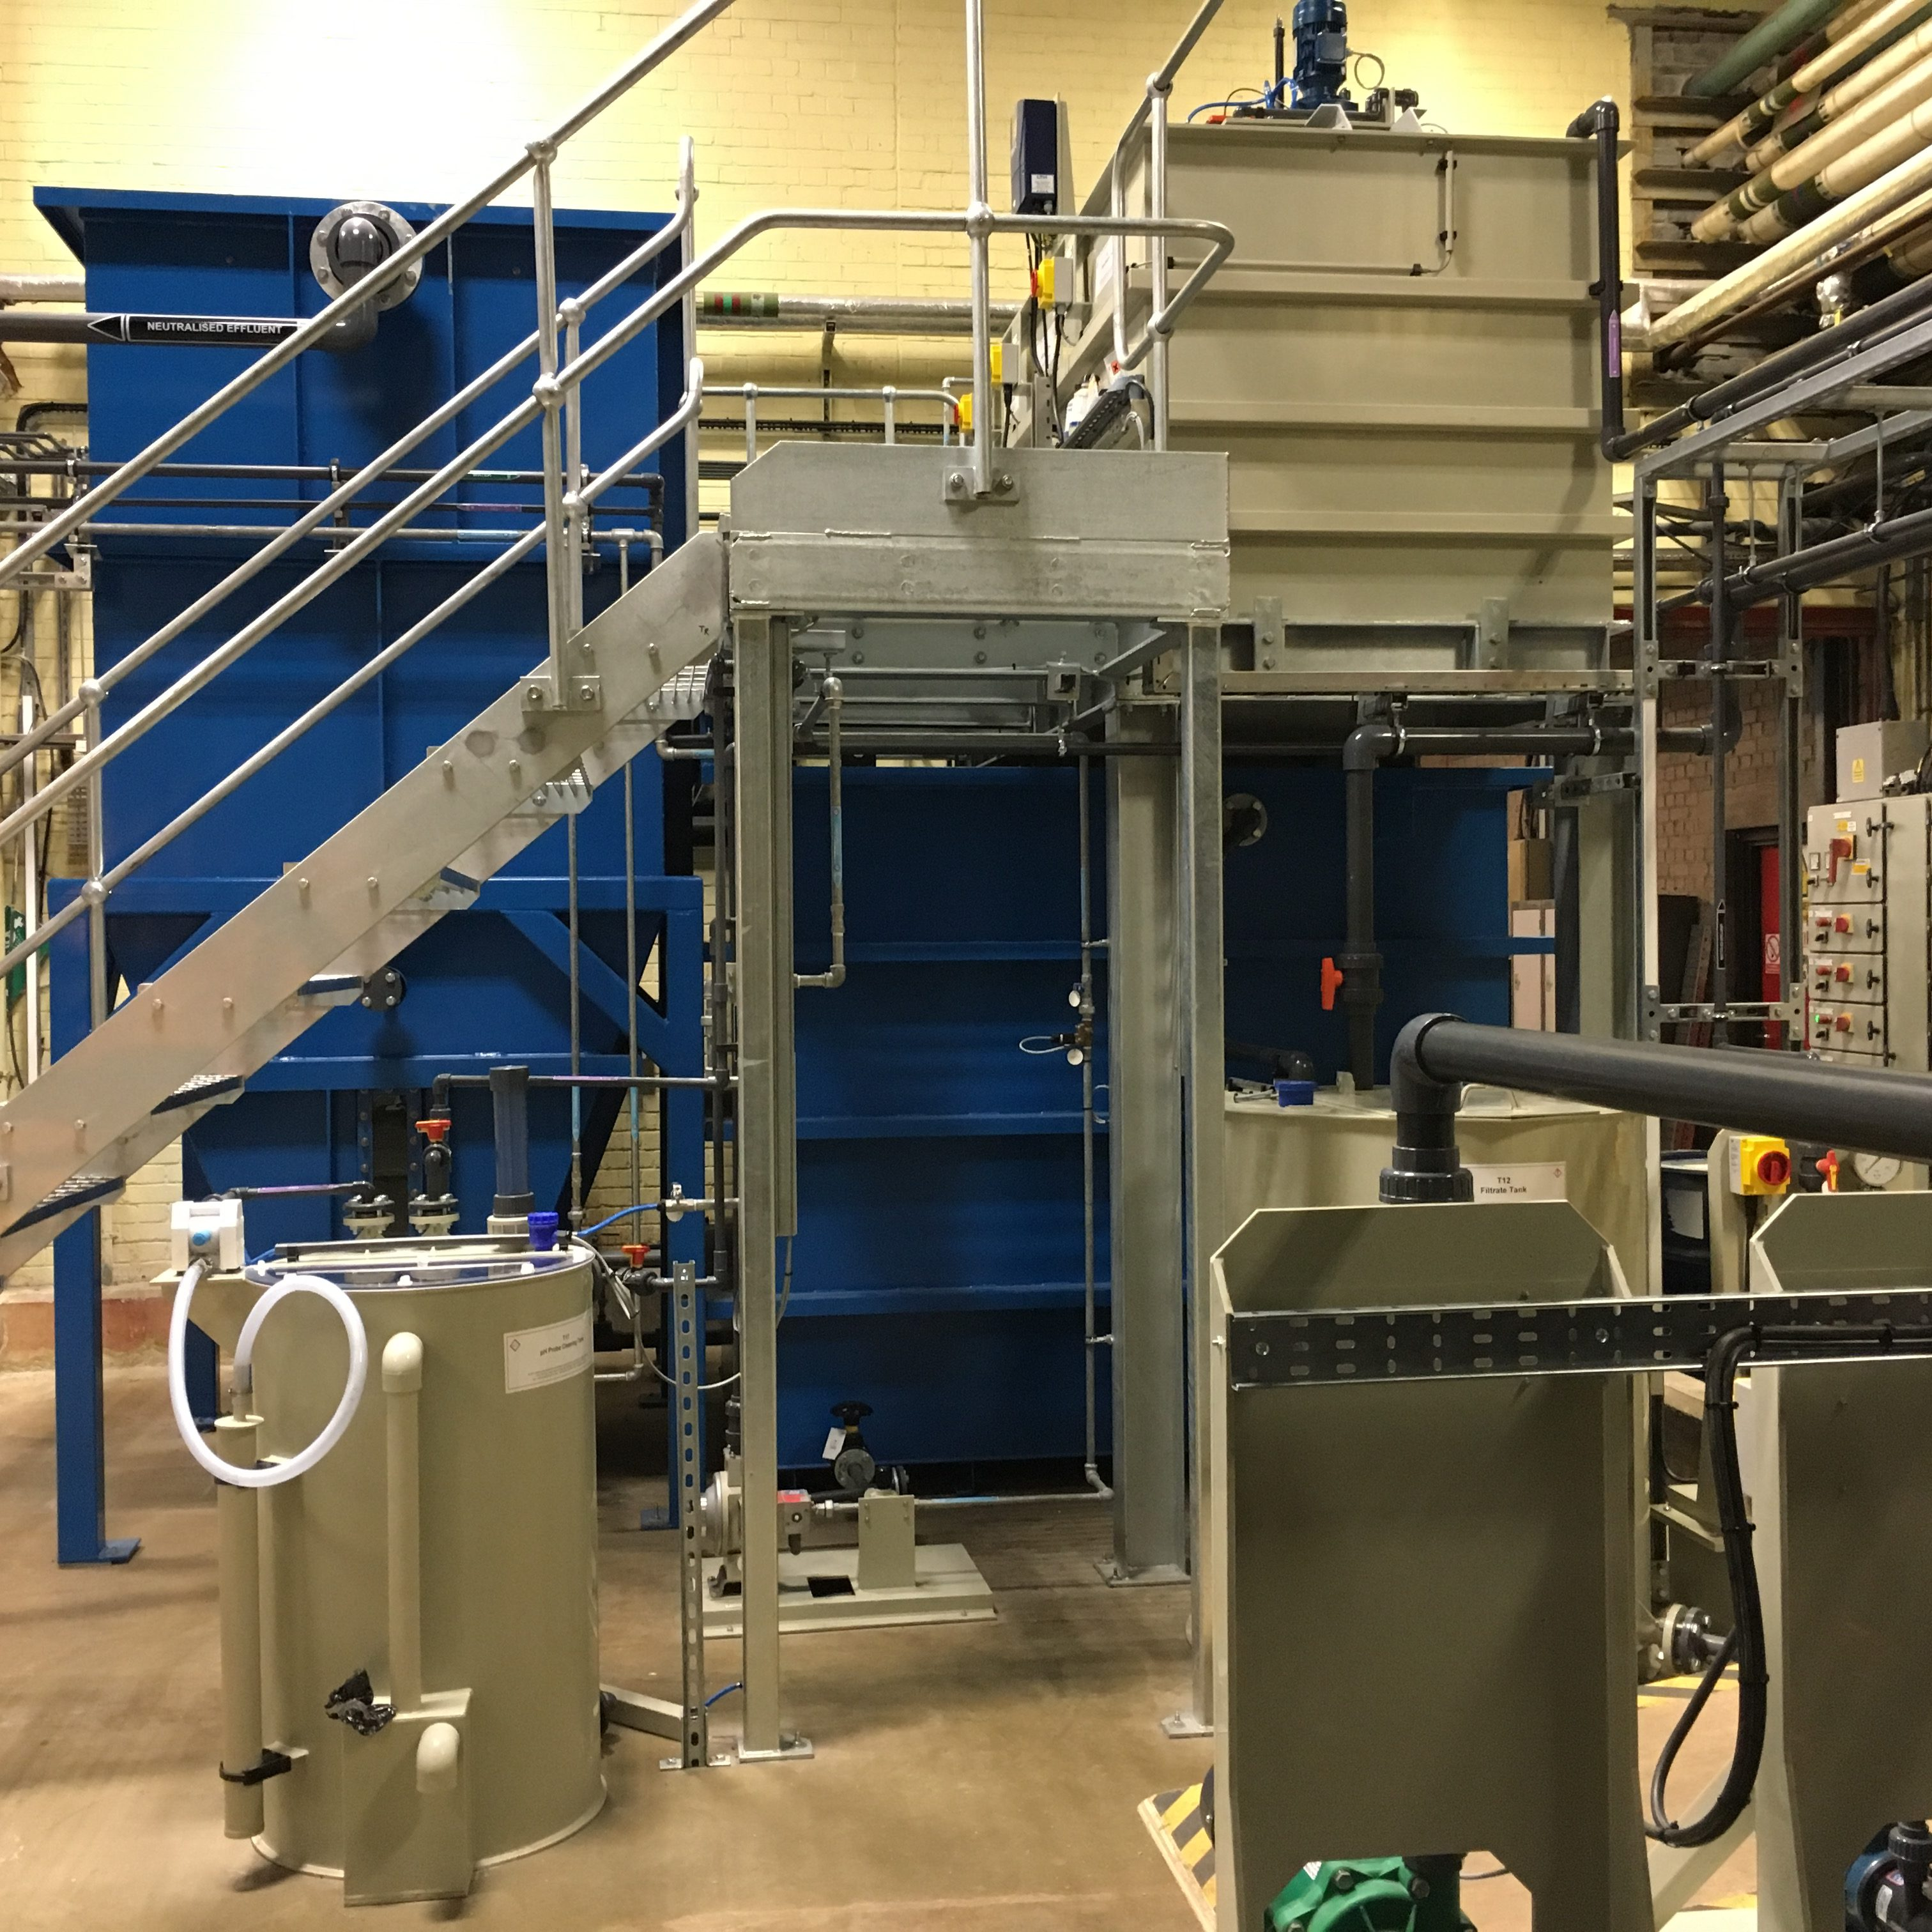 Aerospace sector demands high quality Wastewater Treatmant plants